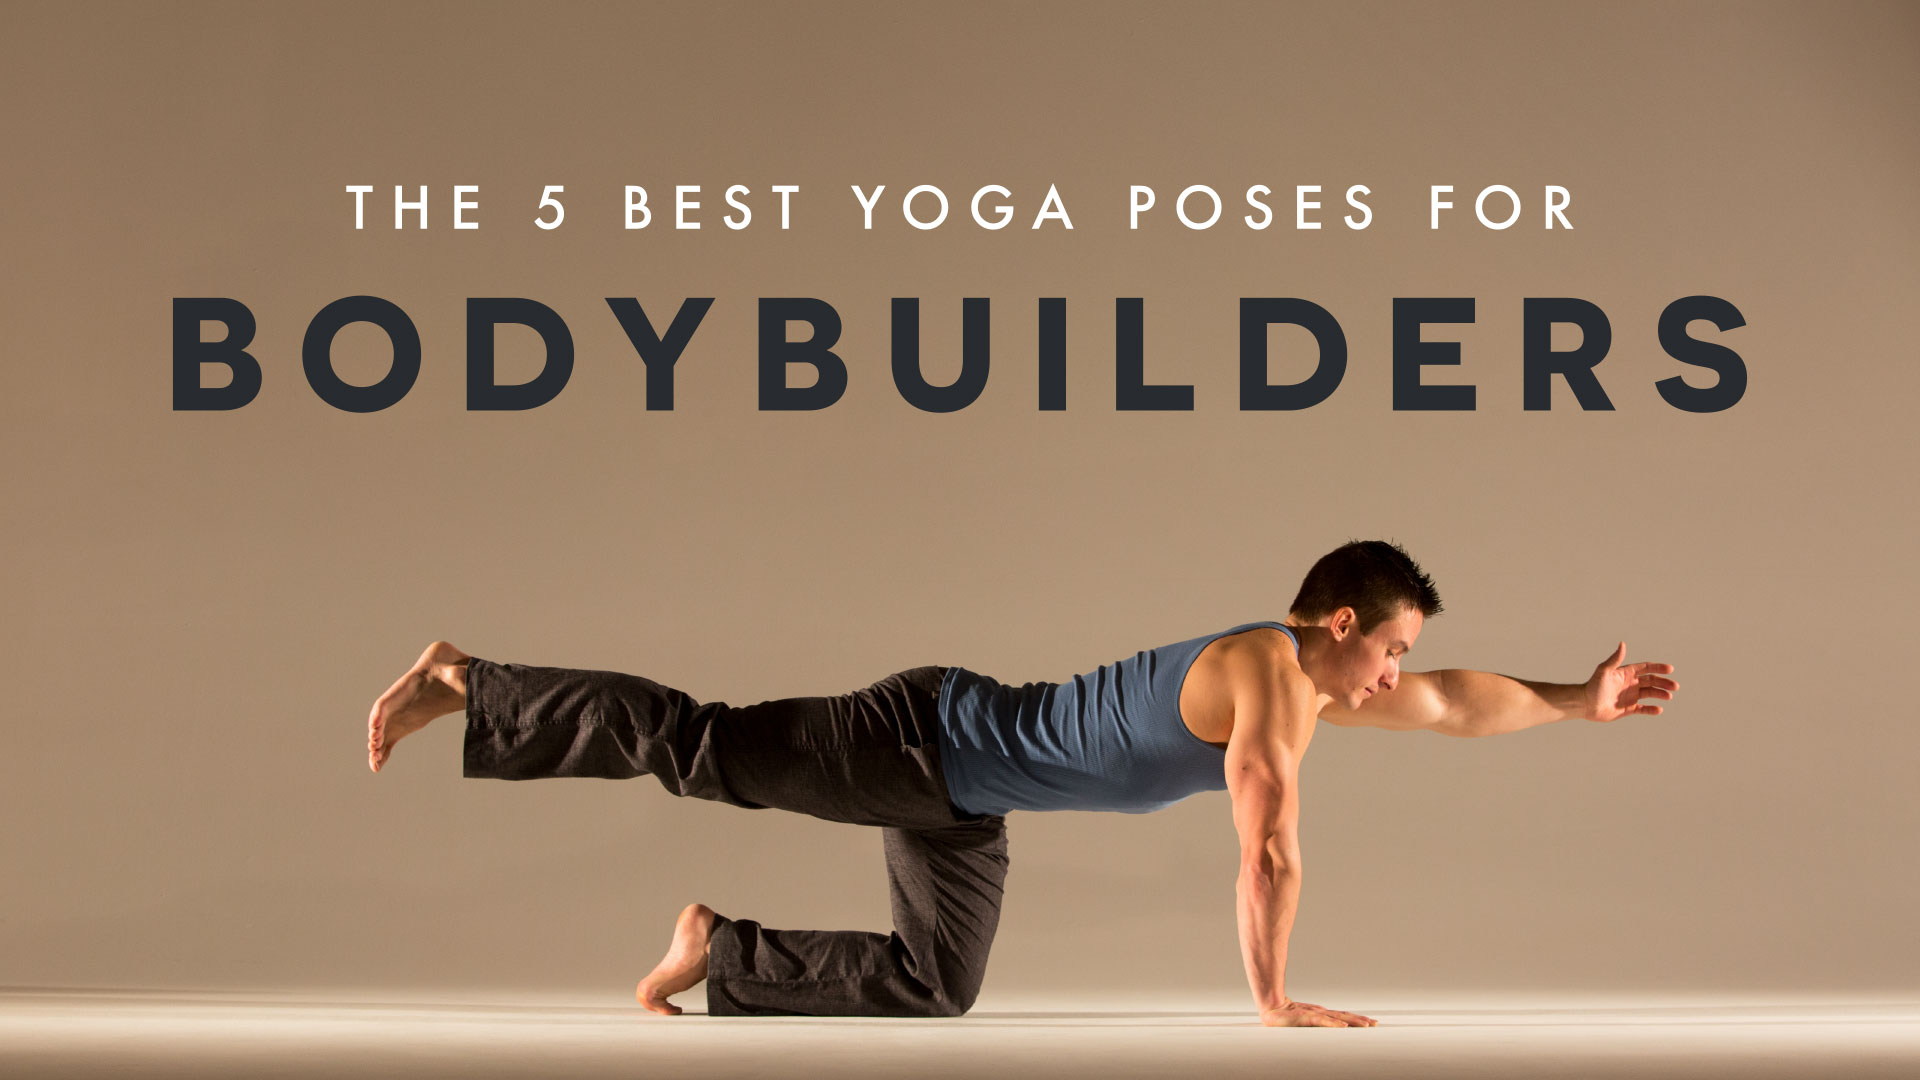 The 5 Best Yoga Poses For Bodybuilders